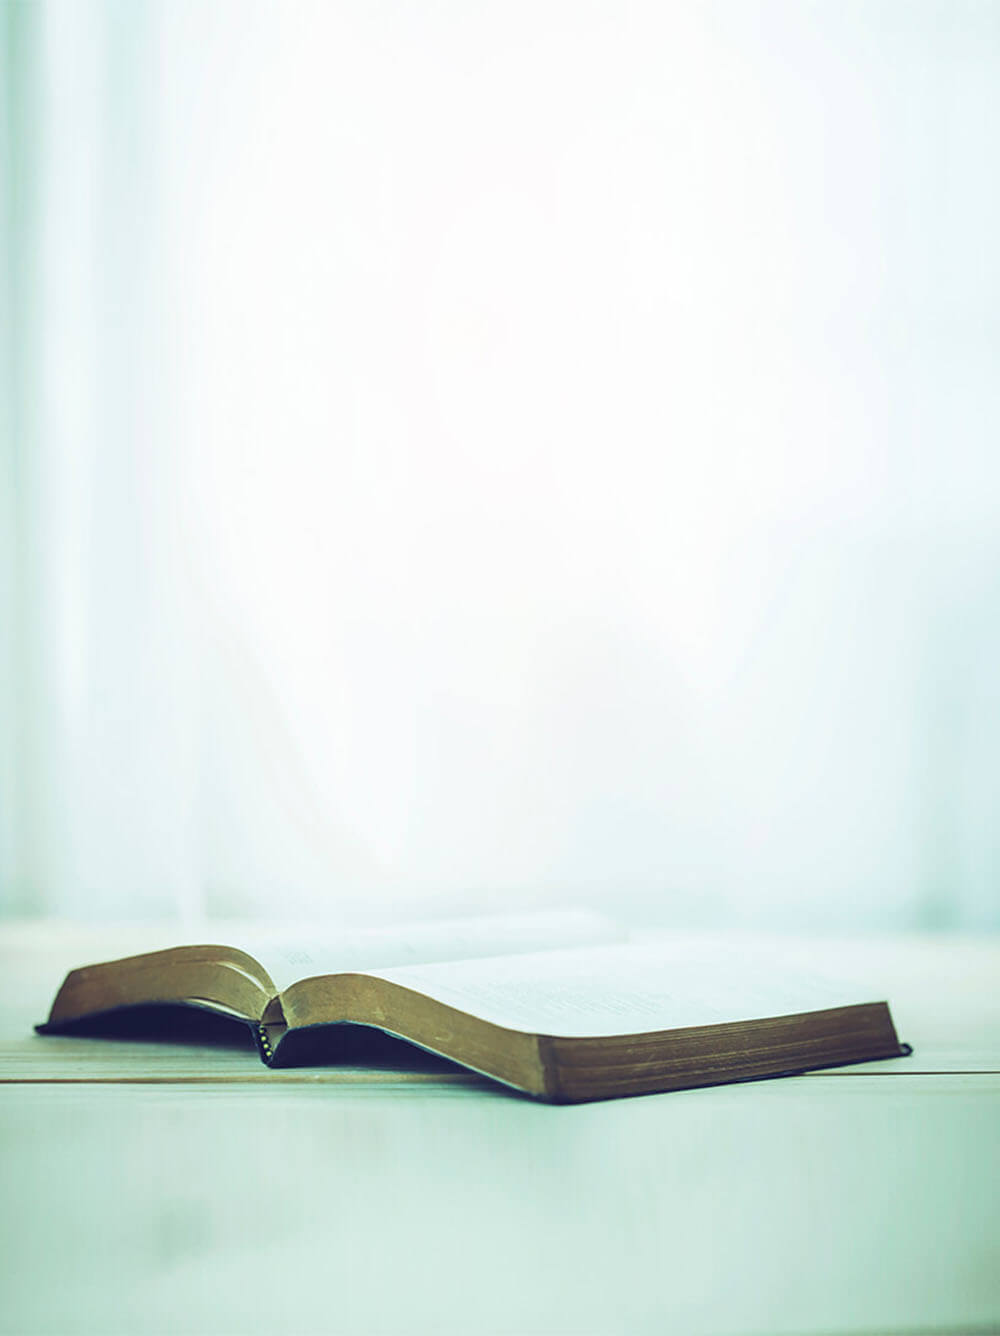 Open bible on a table white background